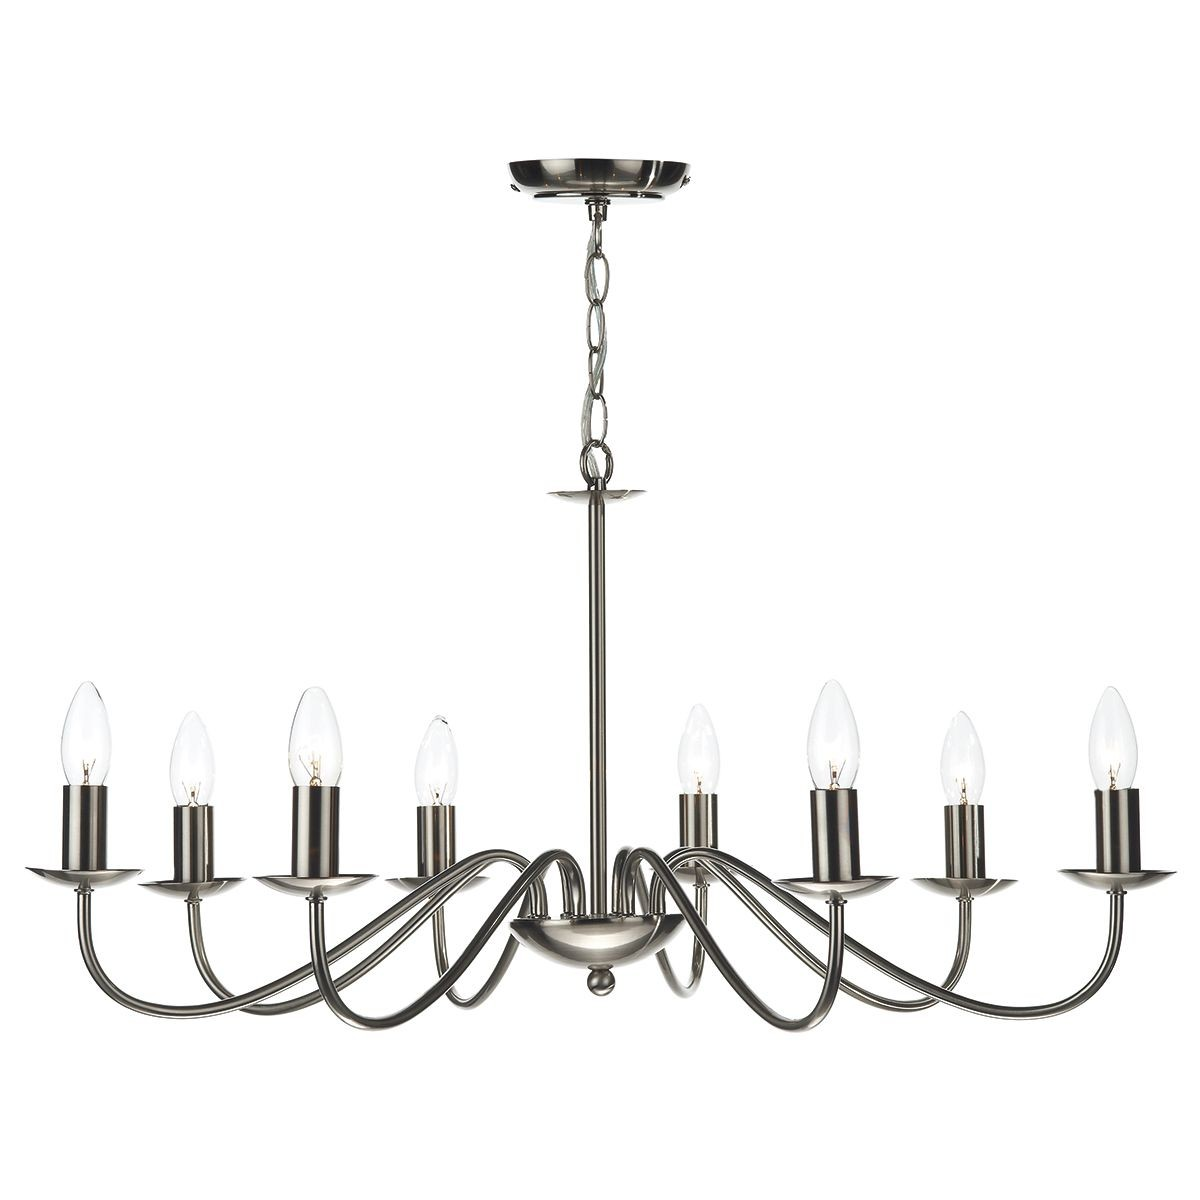 Irwin 8 Light Pendant Dual Mount Satin Chrome